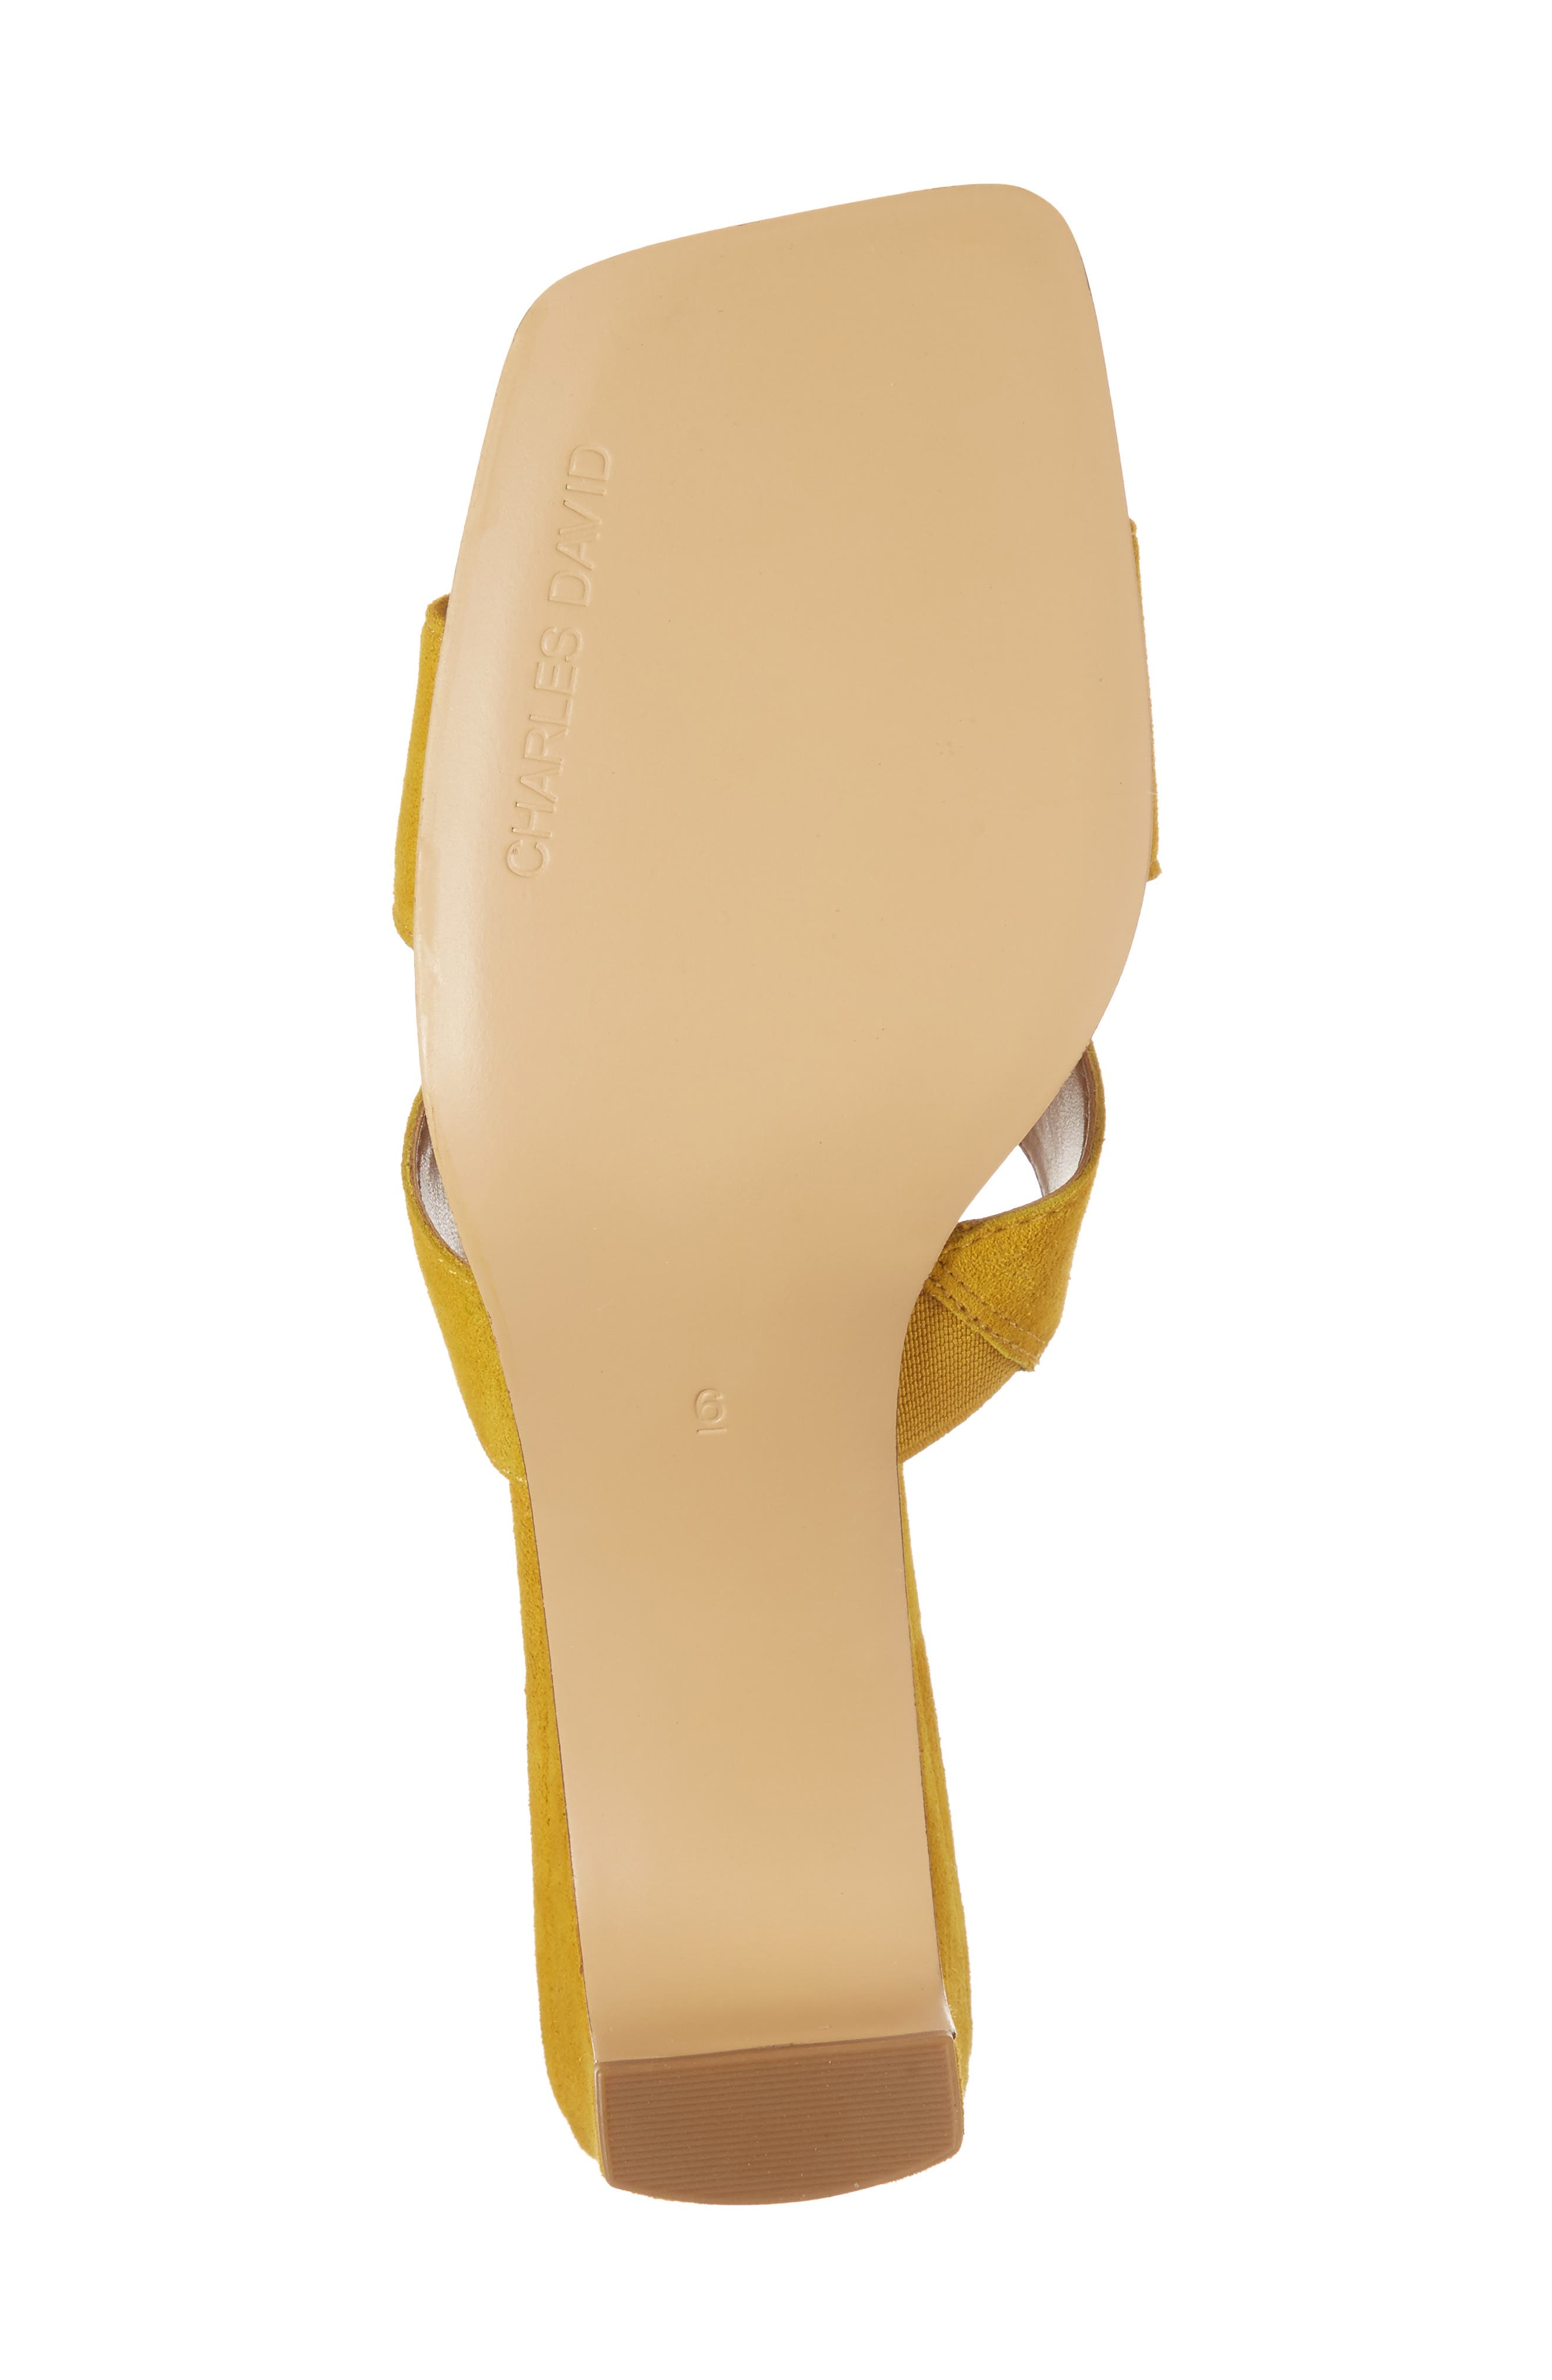 Harley Slide Sandal,                             Alternate thumbnail 6, color,                             Bright Yellow Suede